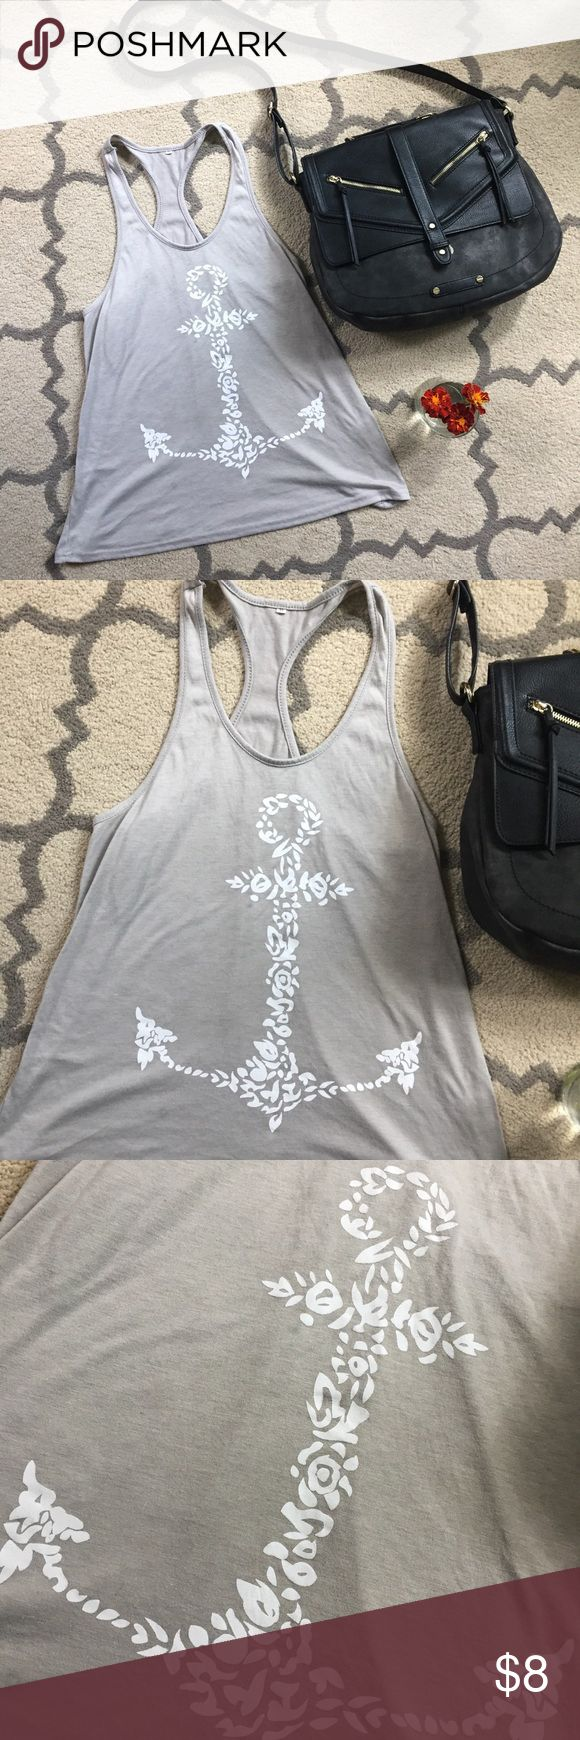 Grey & white Anchor tank top racerback size medium Gray racerback style tank white white anchor pattern on front. Size medium. Nautical, boating, lake life 👌🏽 Tops Tank Tops